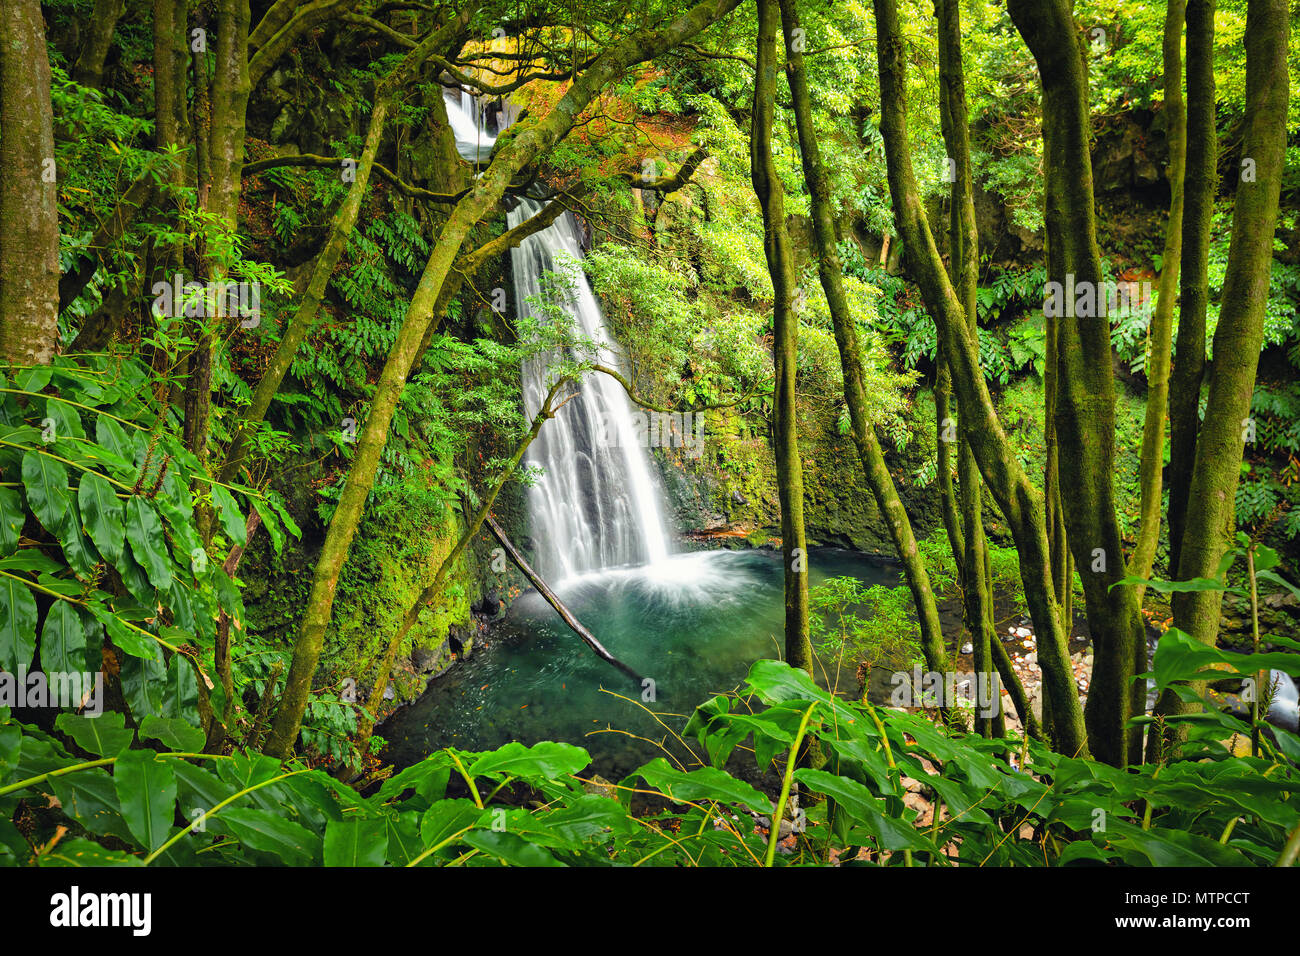 Salto do Prego waterfall lost in the rainforest, Sao Miguel Island, Azores, Portugal - Stock Image